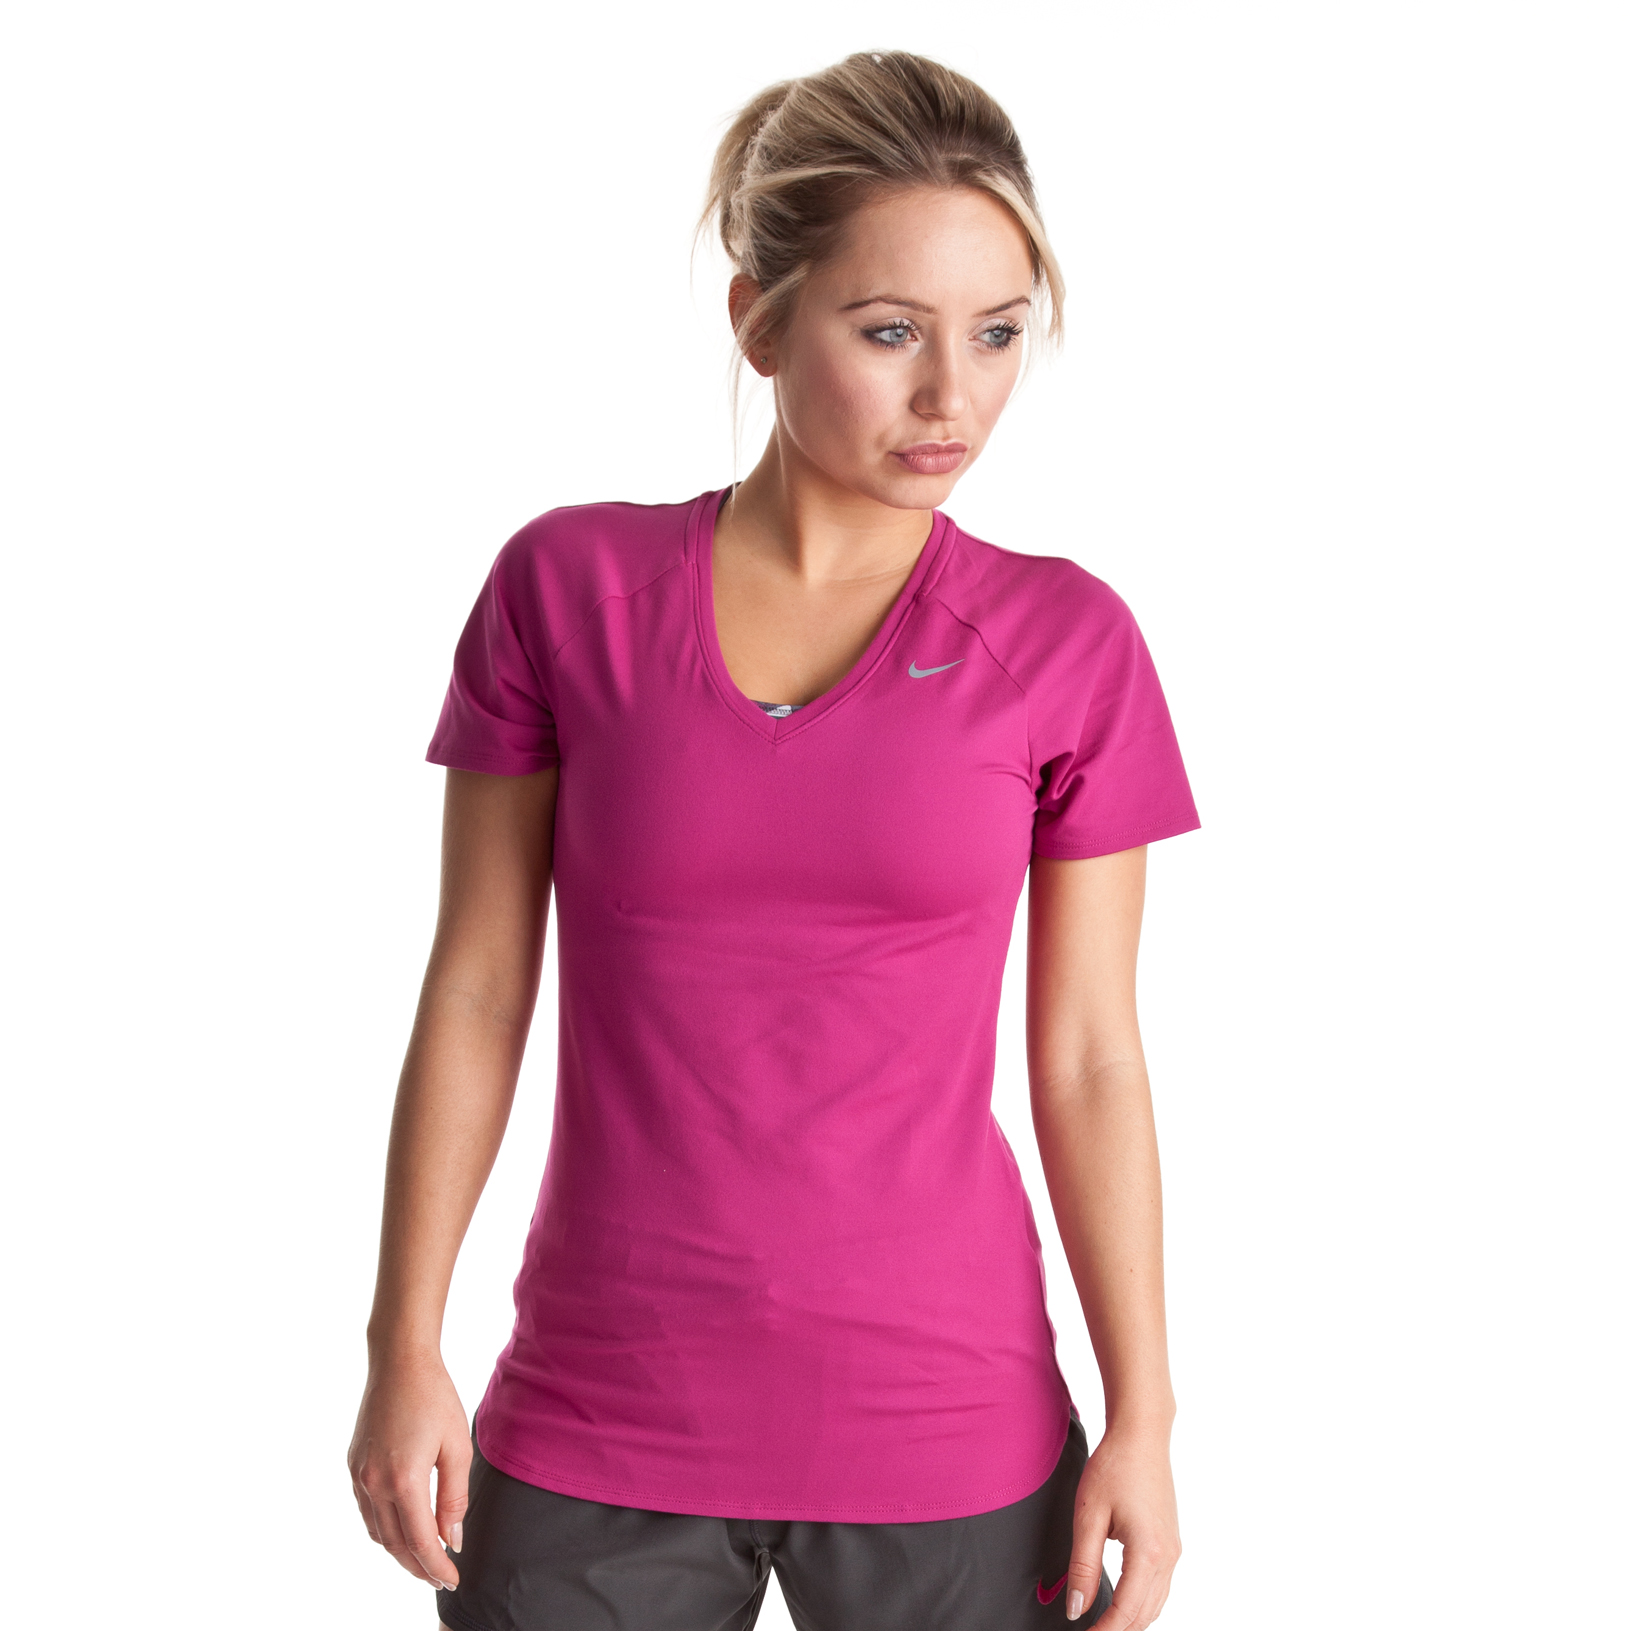 Nike Regular Club Short Sleeve Baselayer - Rave Pink/Cool Grey - Womens